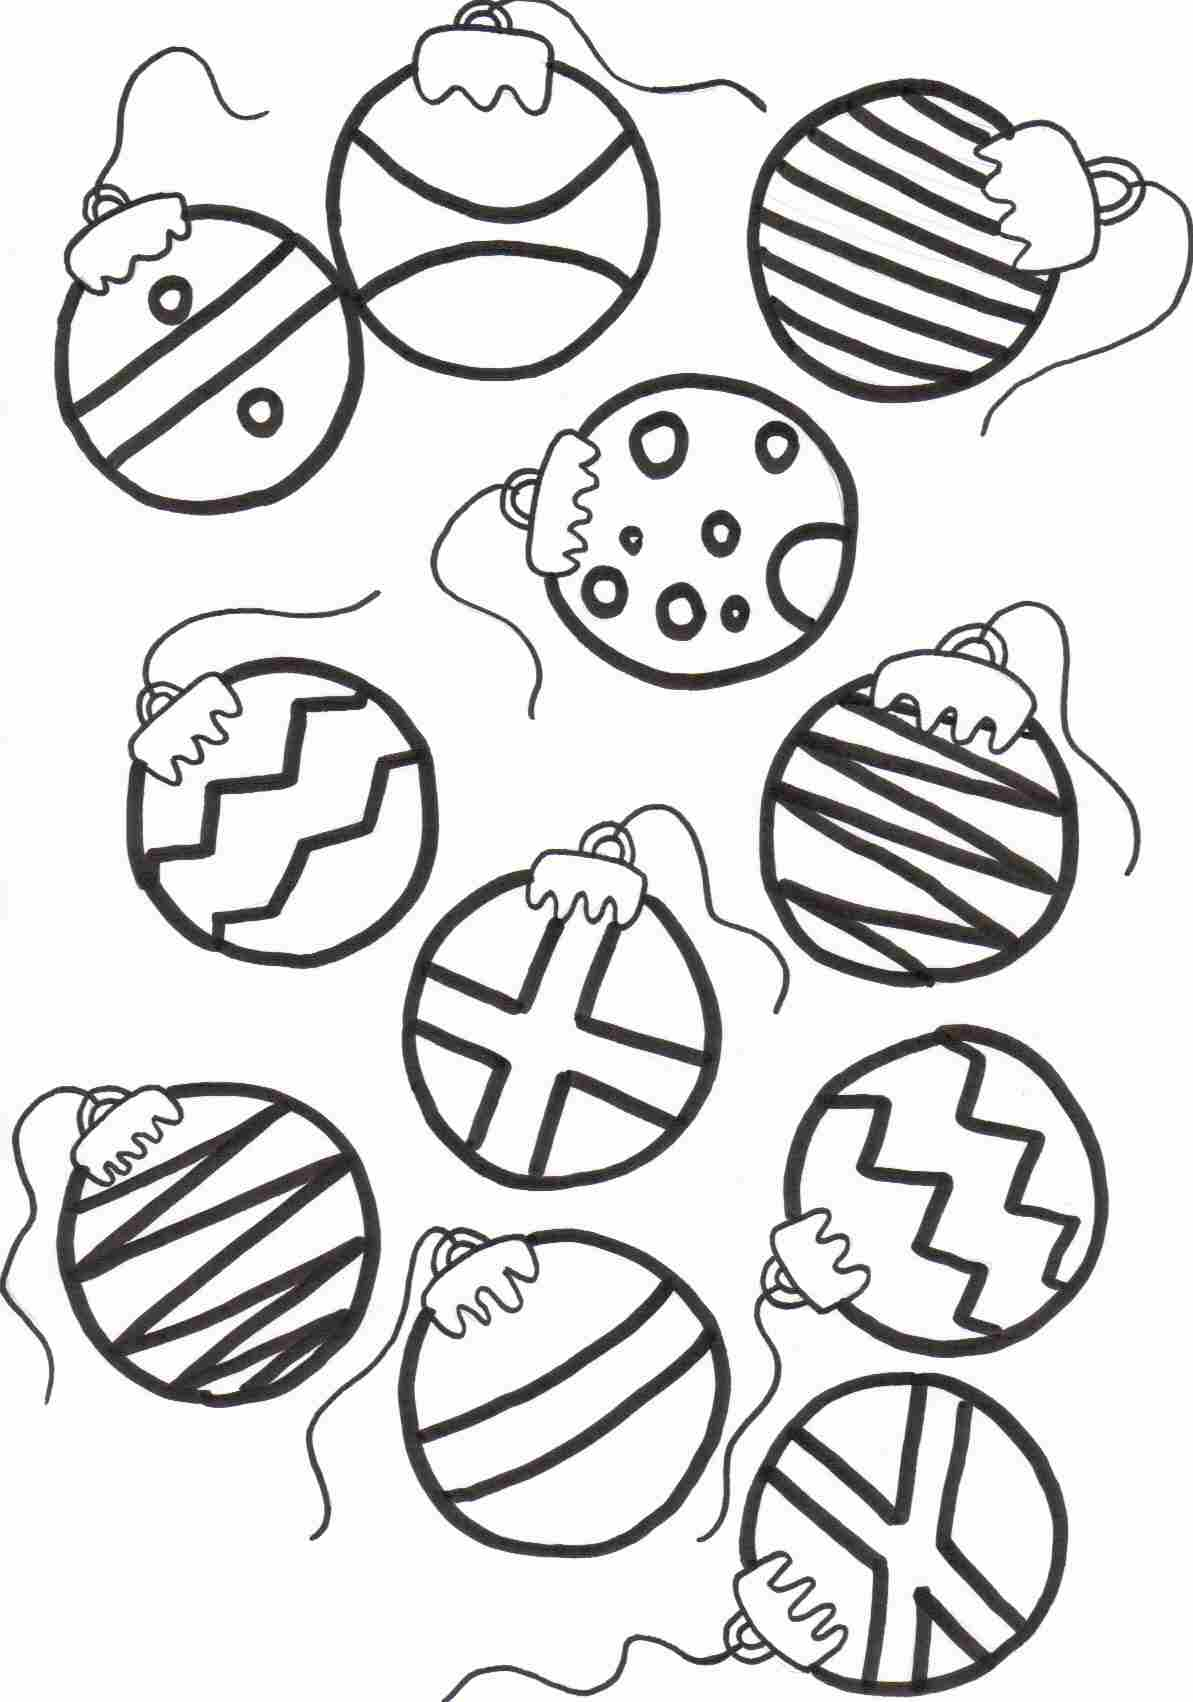 1193x1702 Christmas Ornament Coloring Pages With Wallpapers Wide Ornament